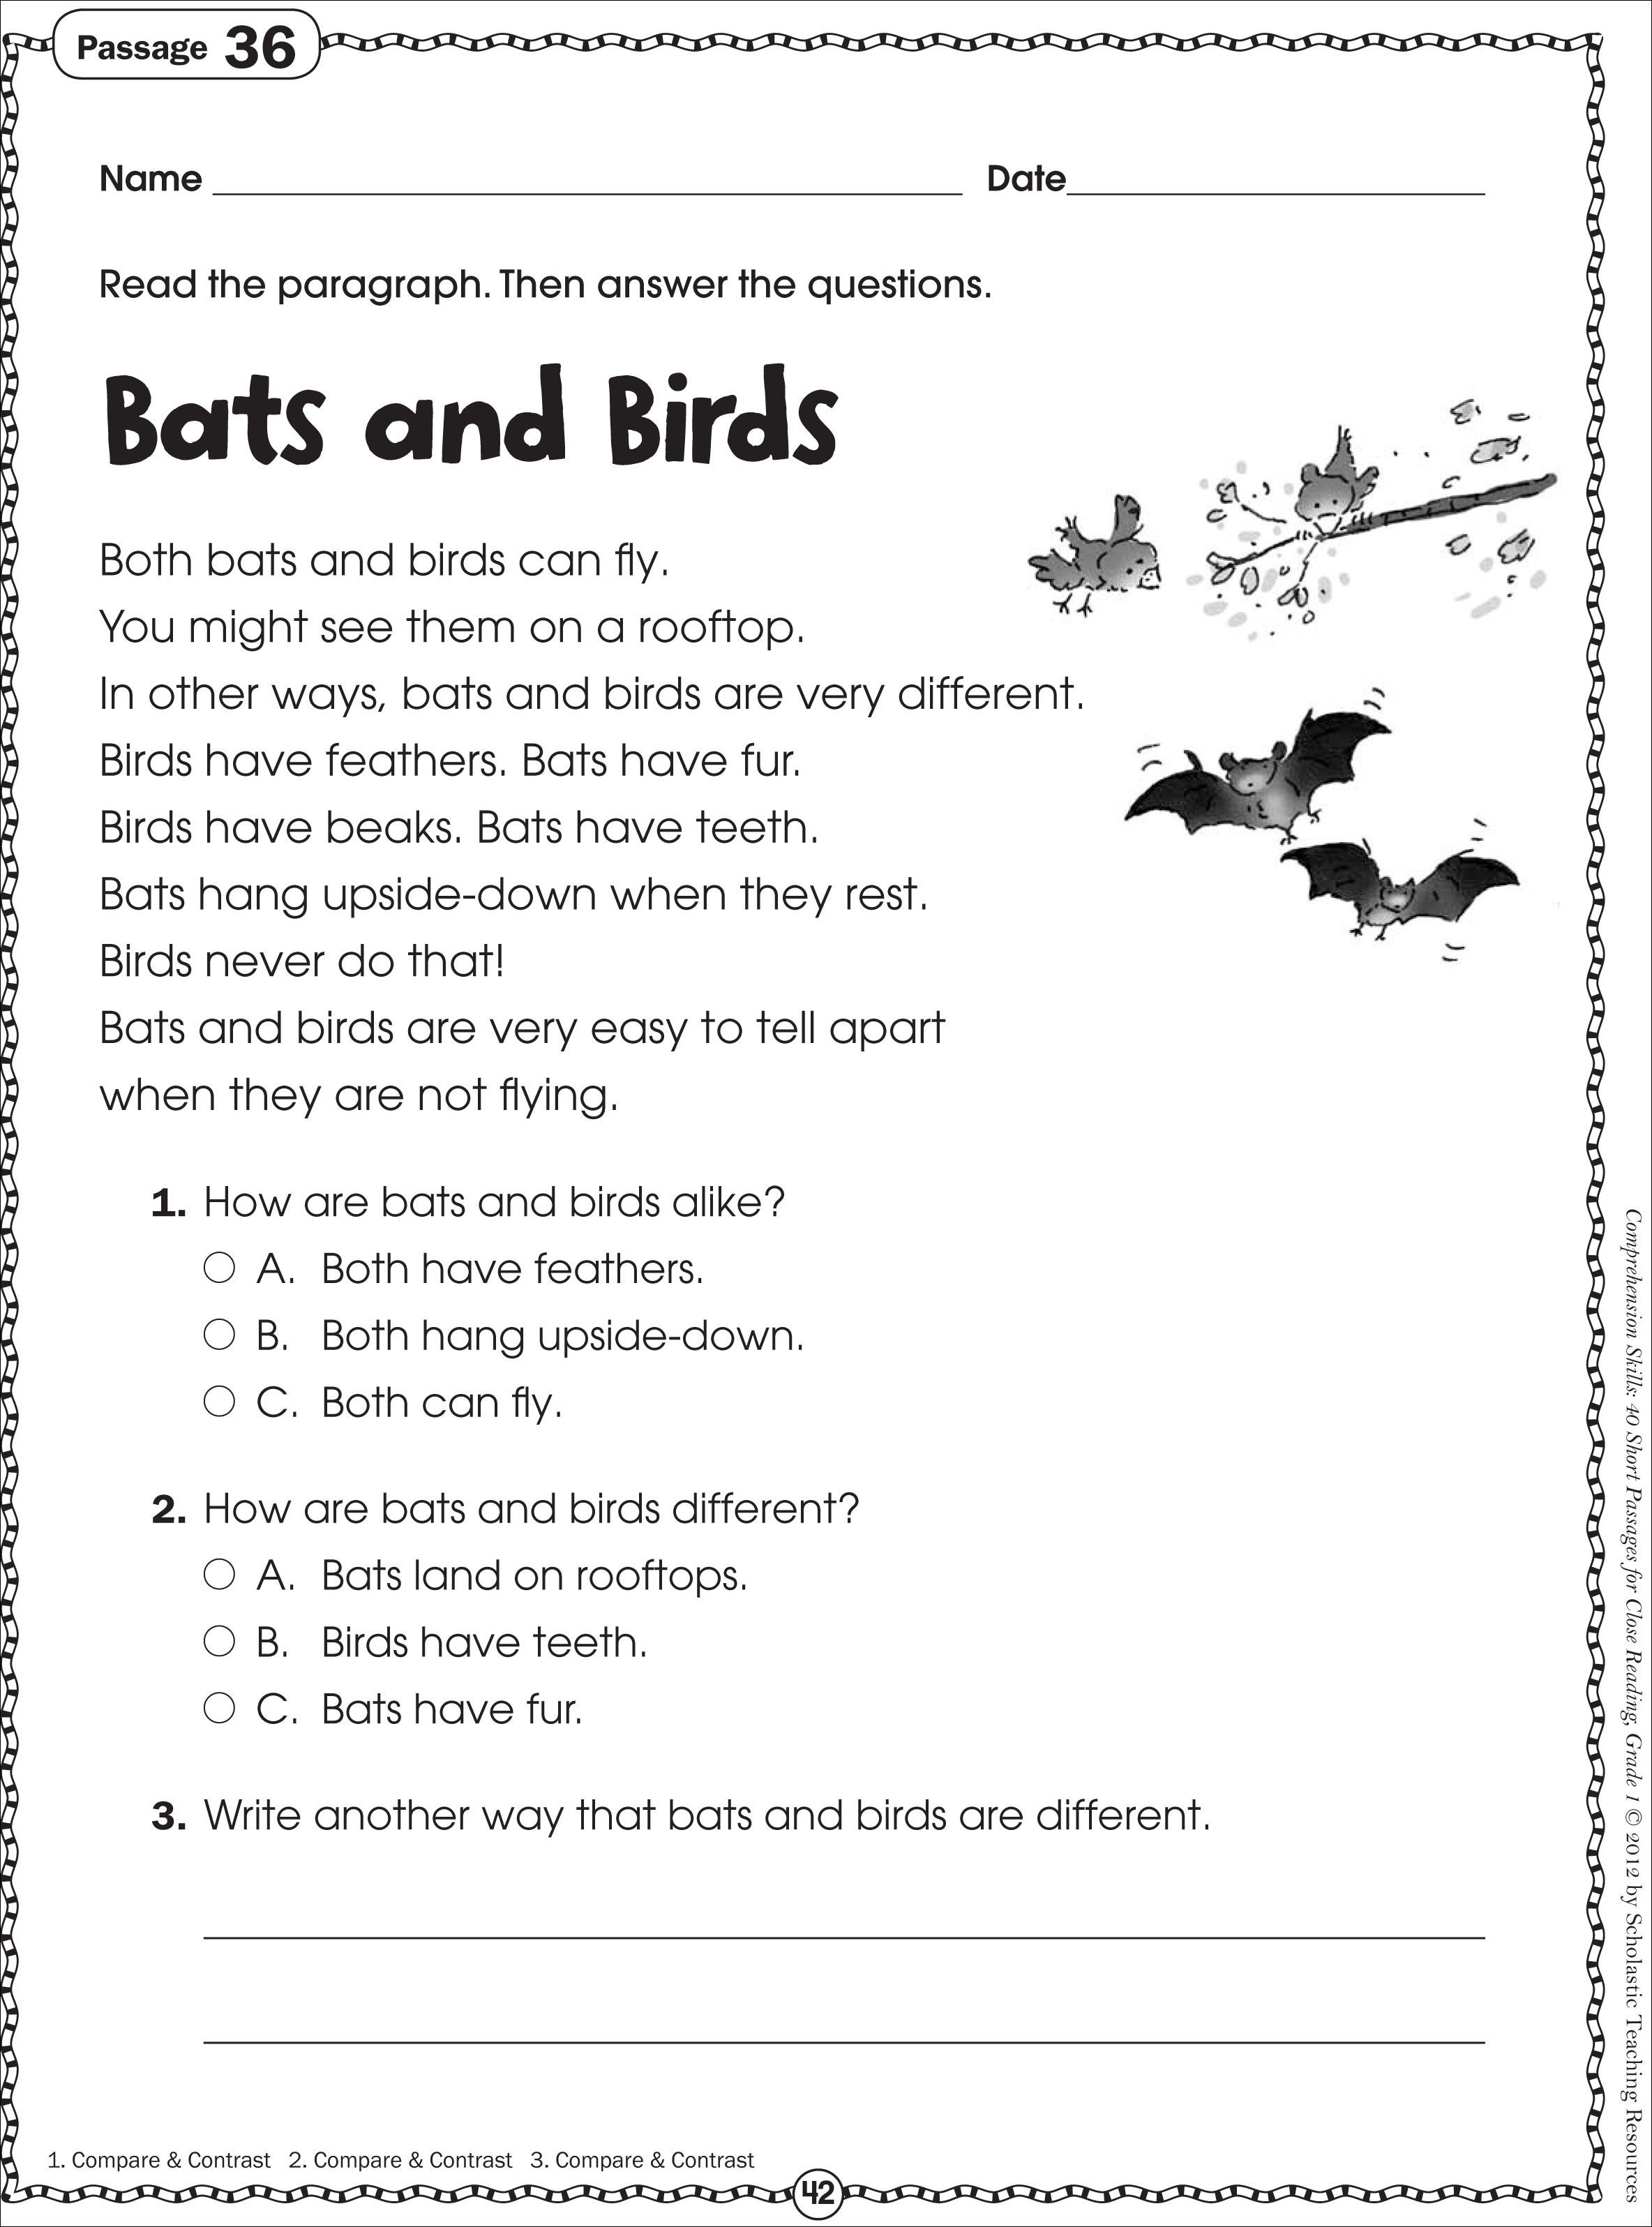 Free Printable English Worksheets For 1st Grade